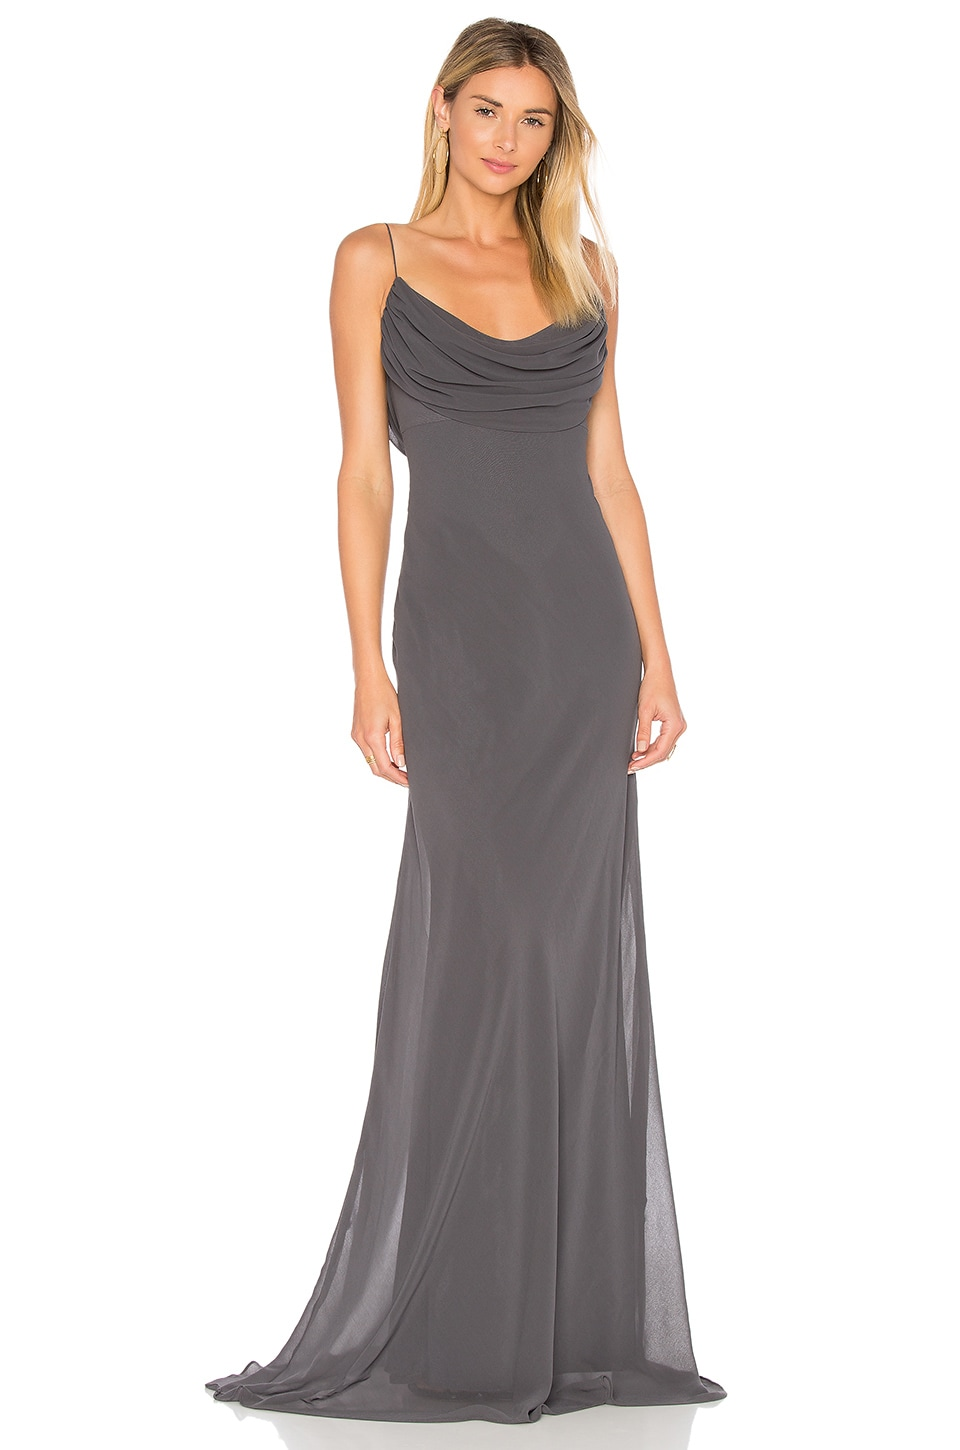 Katie May Eden Gown in Charcoal